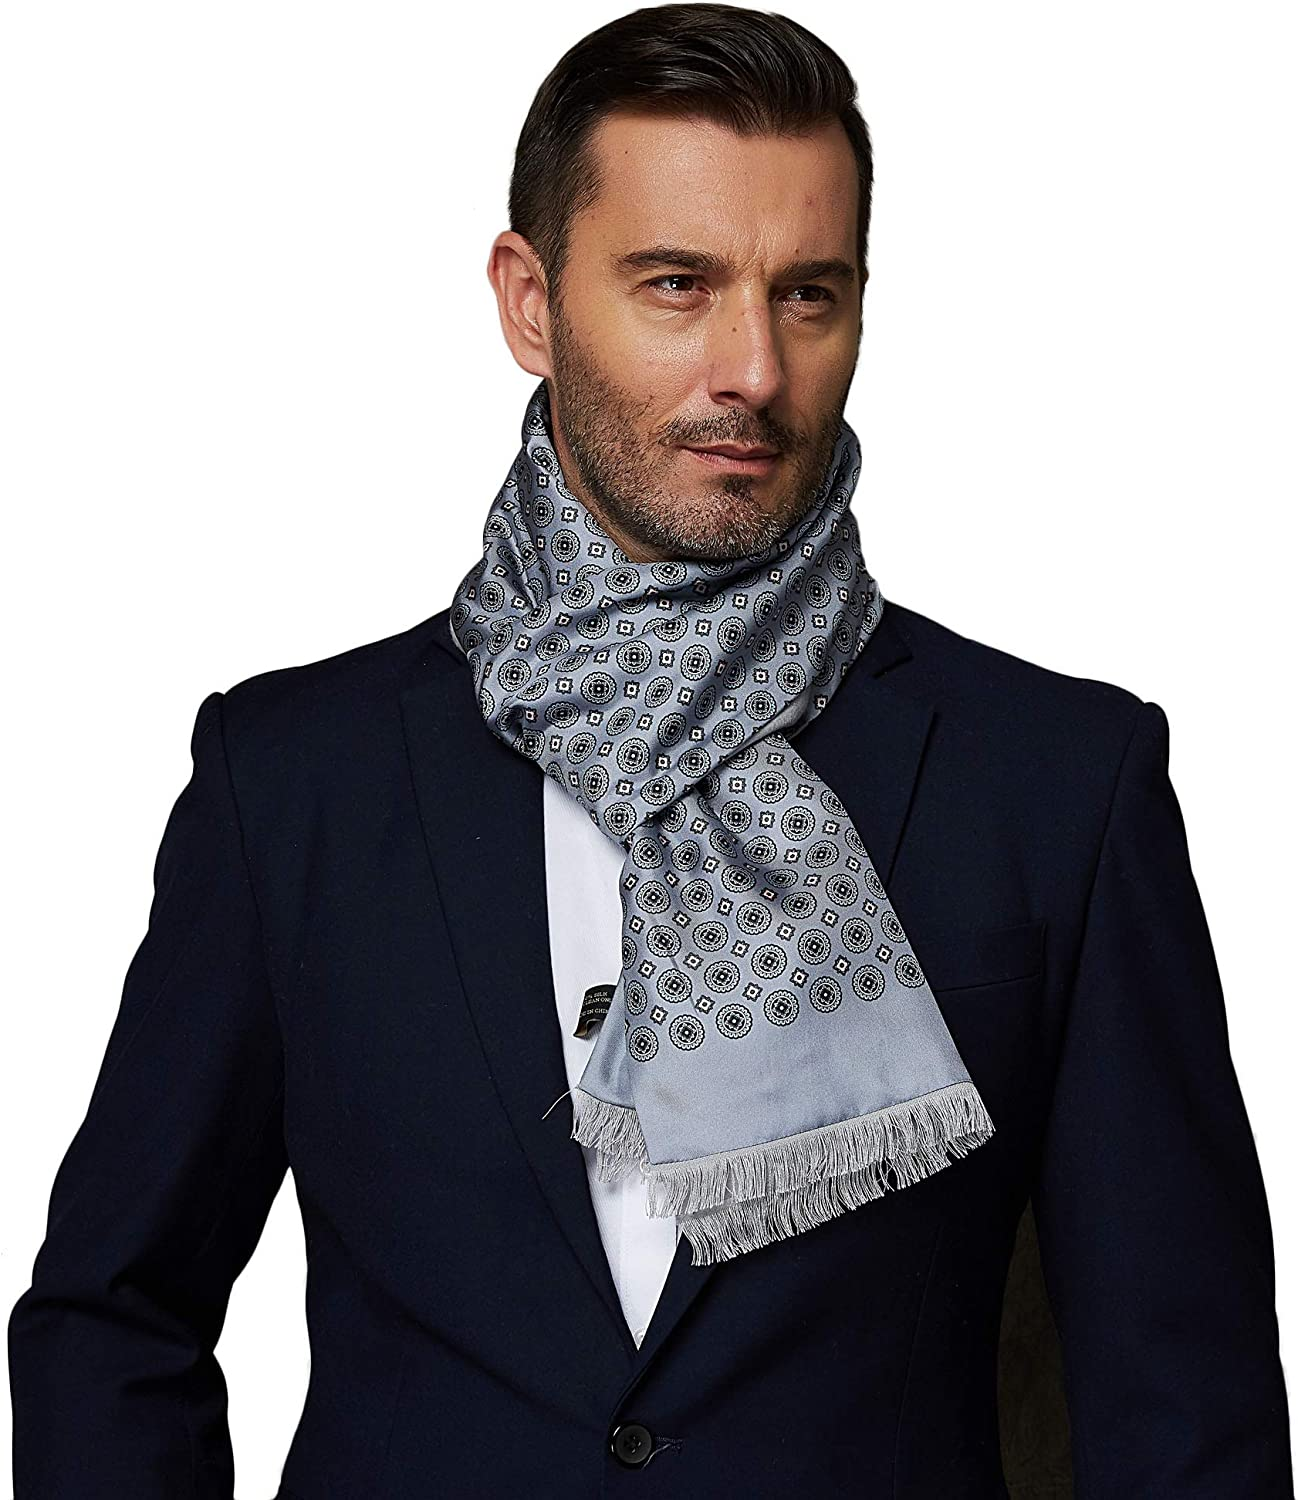 CUDDLE DREAMS Luxurious Men's Silk Scarves for Winter, 2-Layer Design, Silk Charmeuse Facing with Brushed Lining